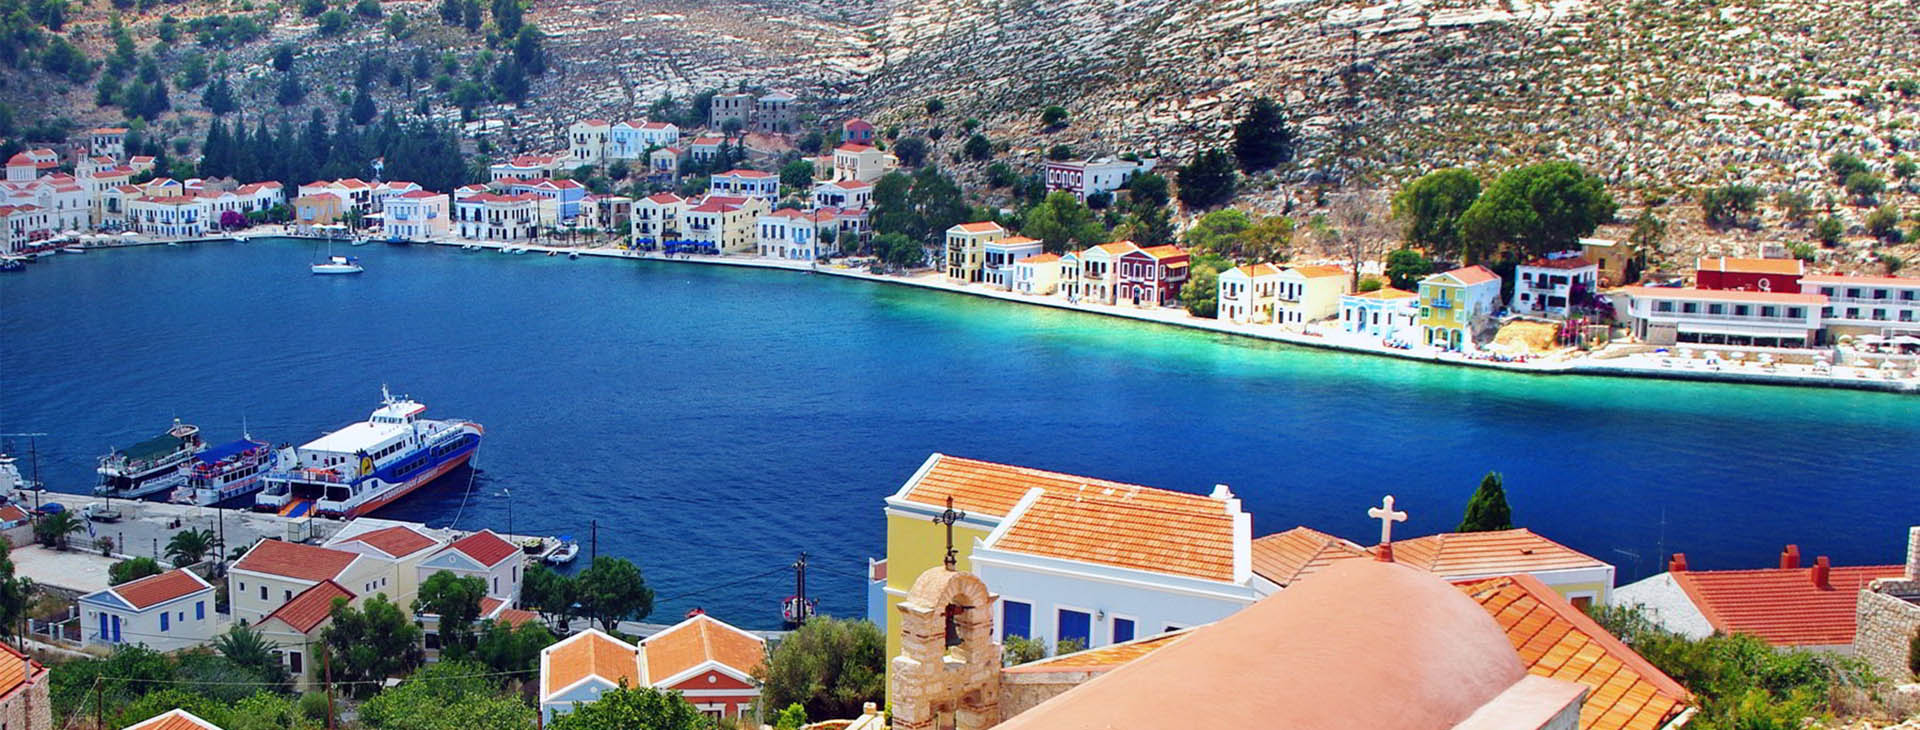 Port of Kastellorizo isle, Dodecanese islands